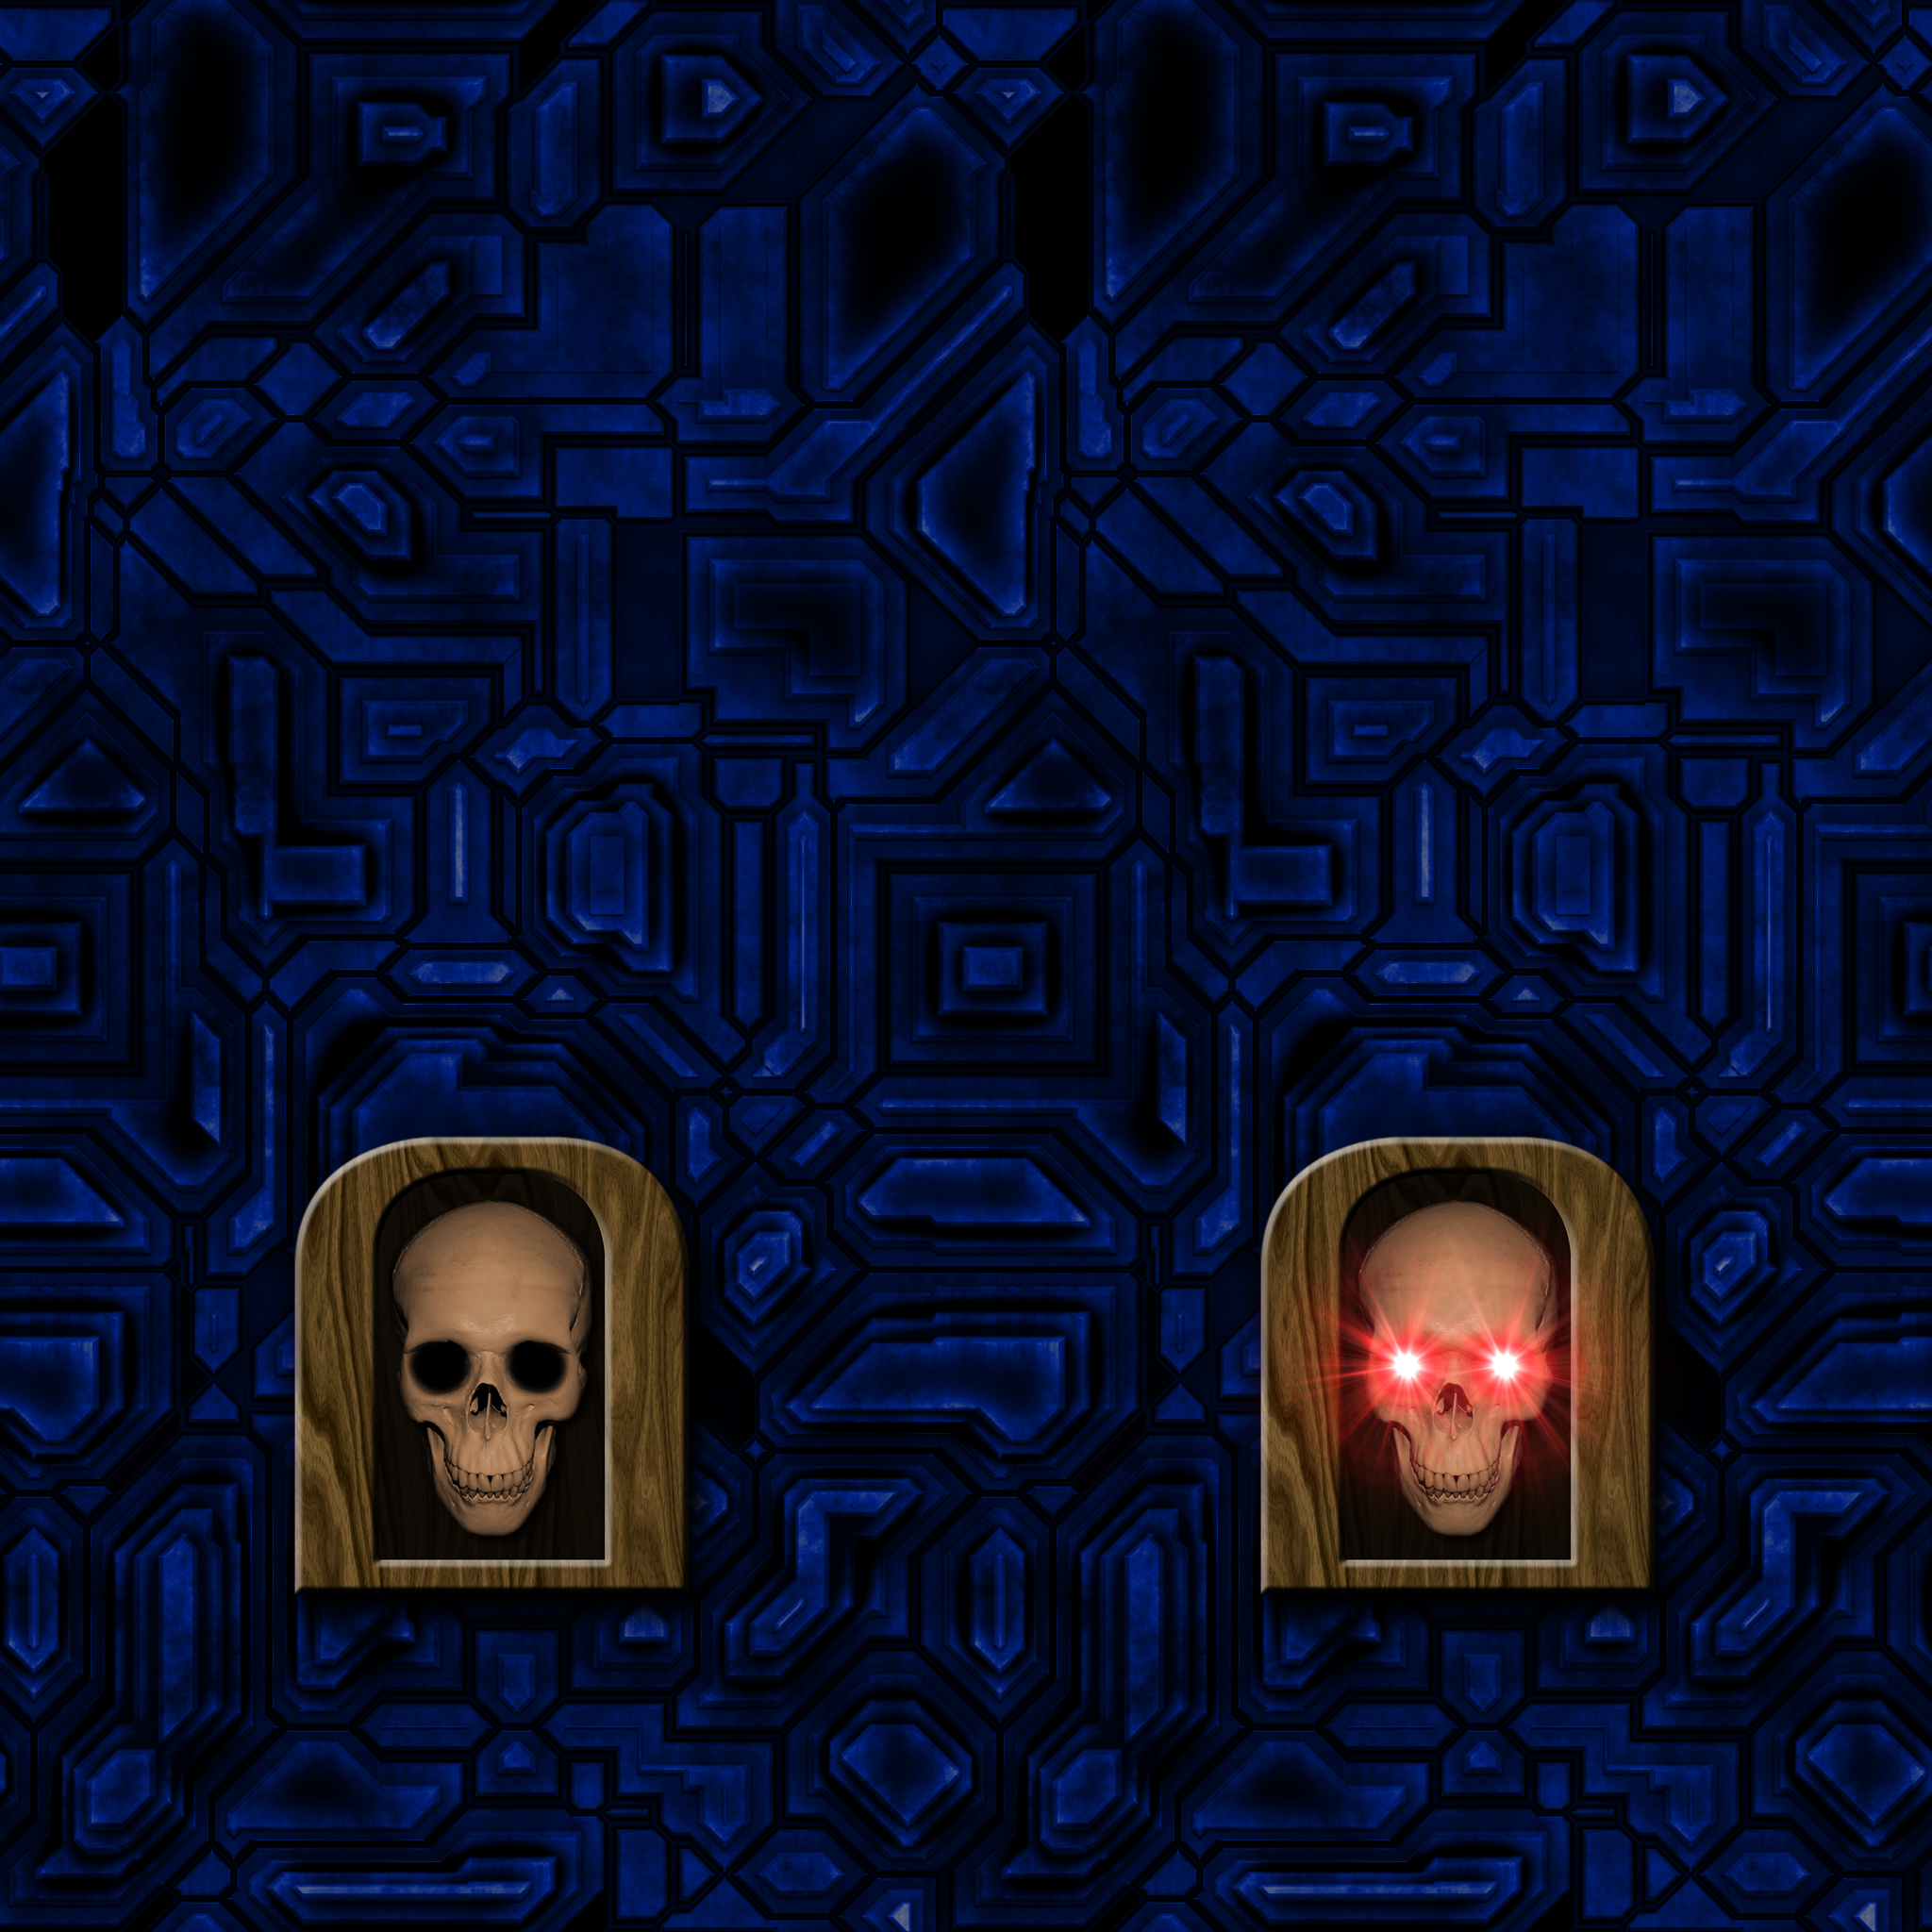 Blue Wall with Skull Switch by Hoover1979